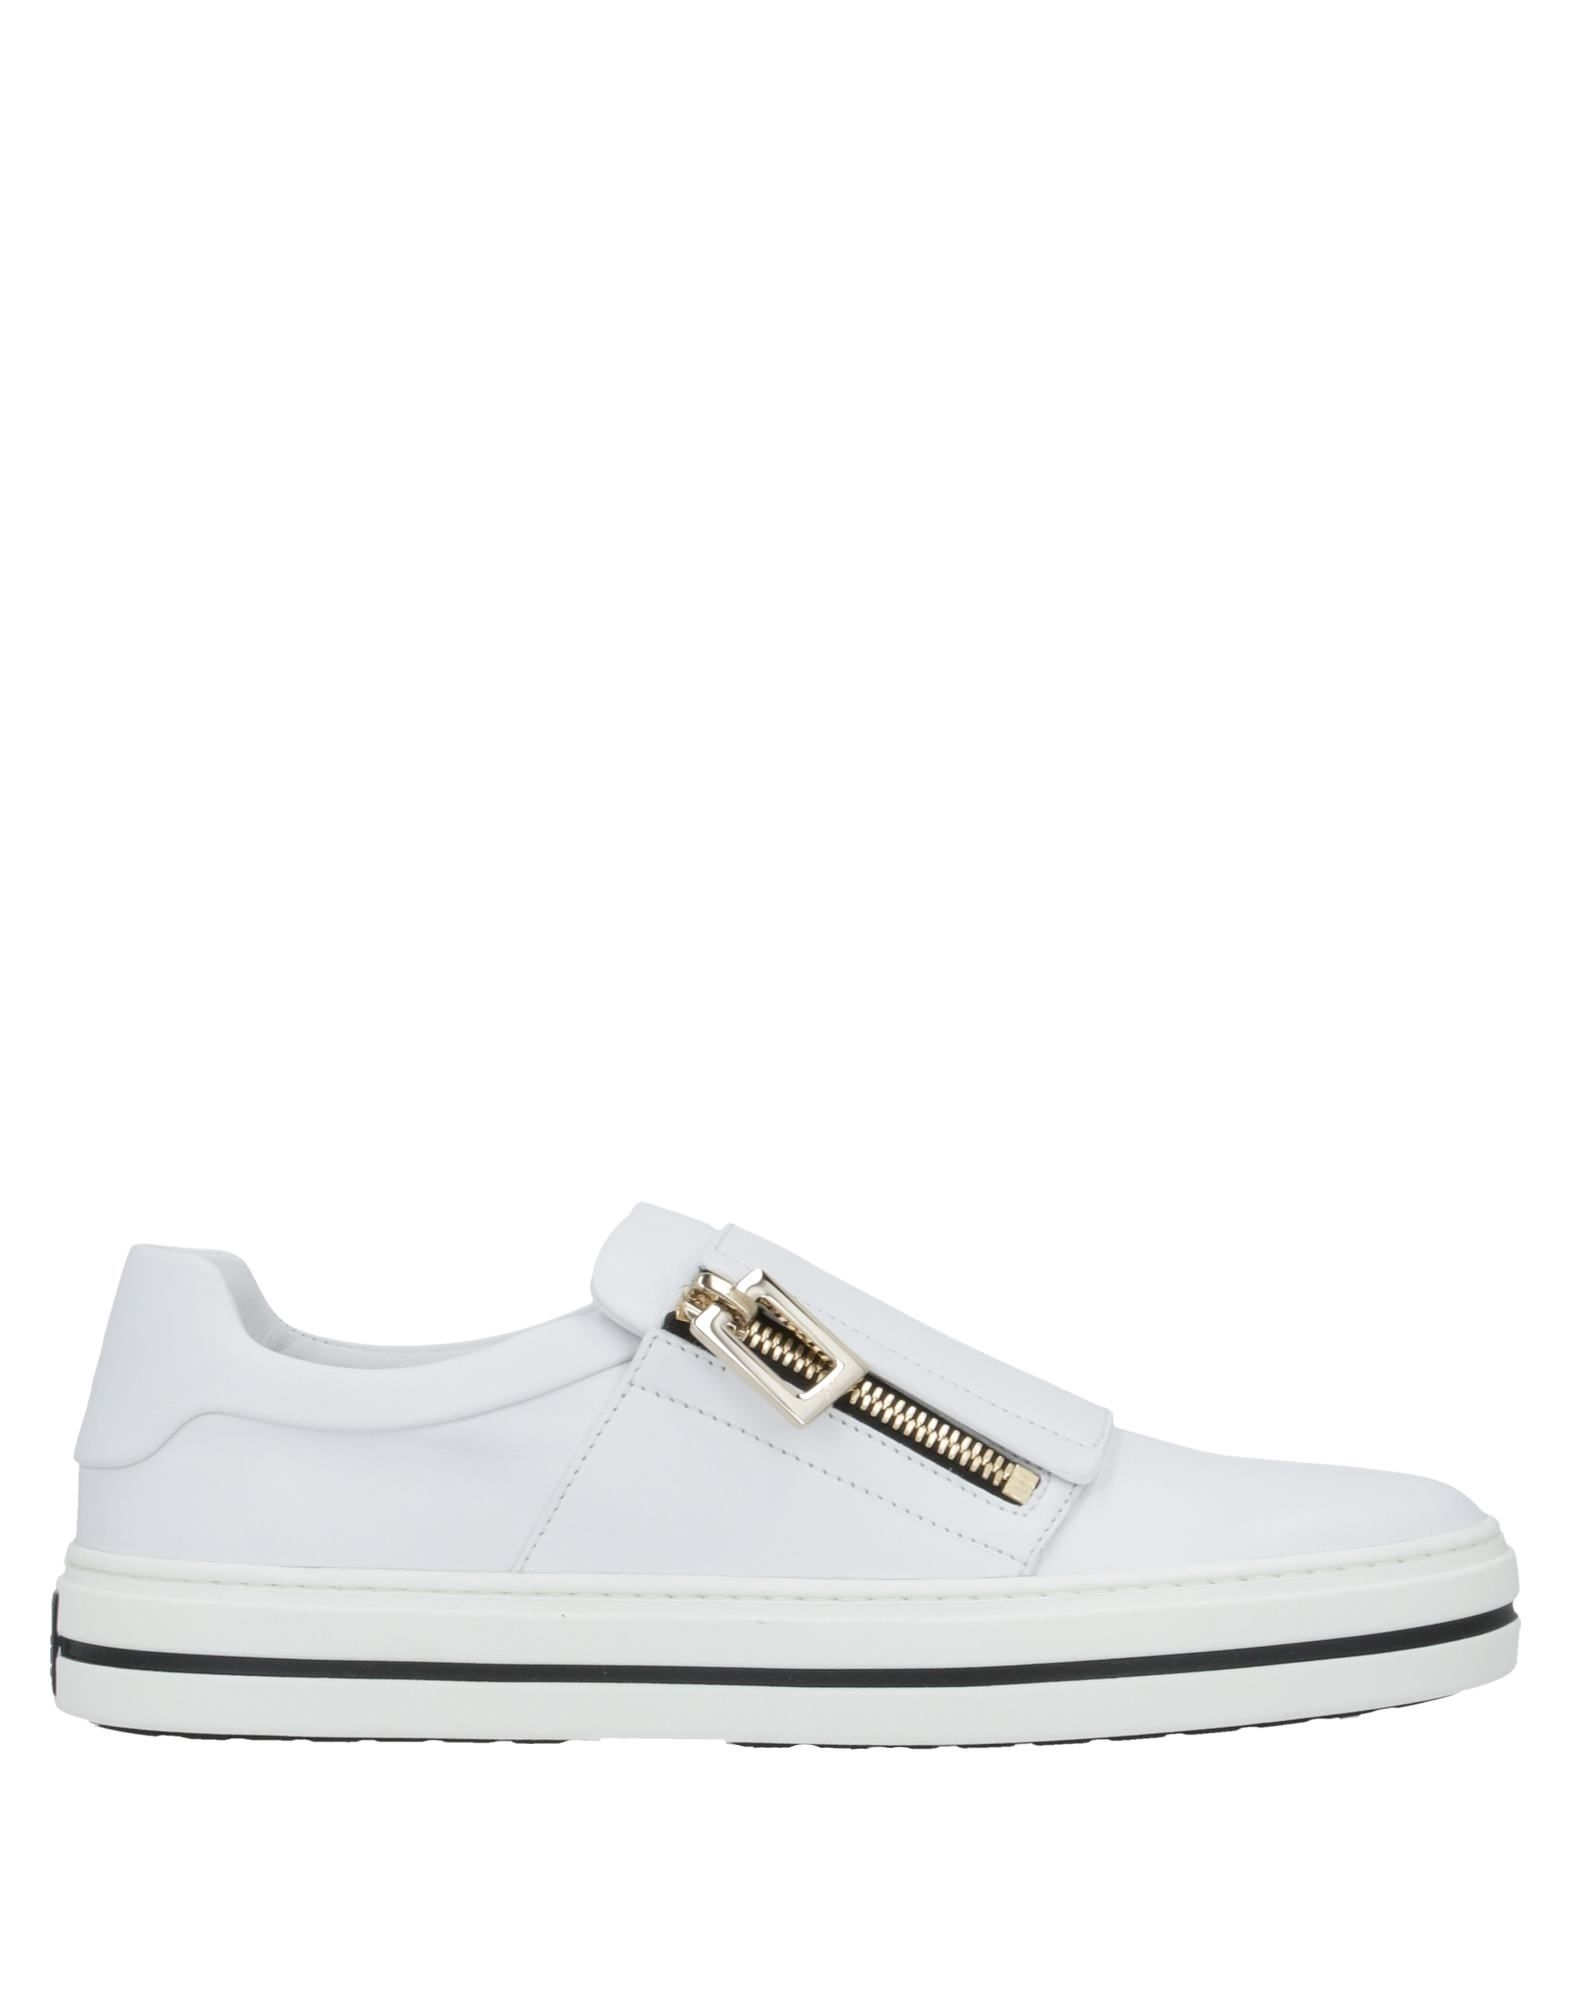 ROGER VIVIER Sneakers. logo, solid color, zip, round toeline, flat, leather lining, rubber cleated sole, contains non-textile parts of animal origin. Soft Leather, Textile fibers